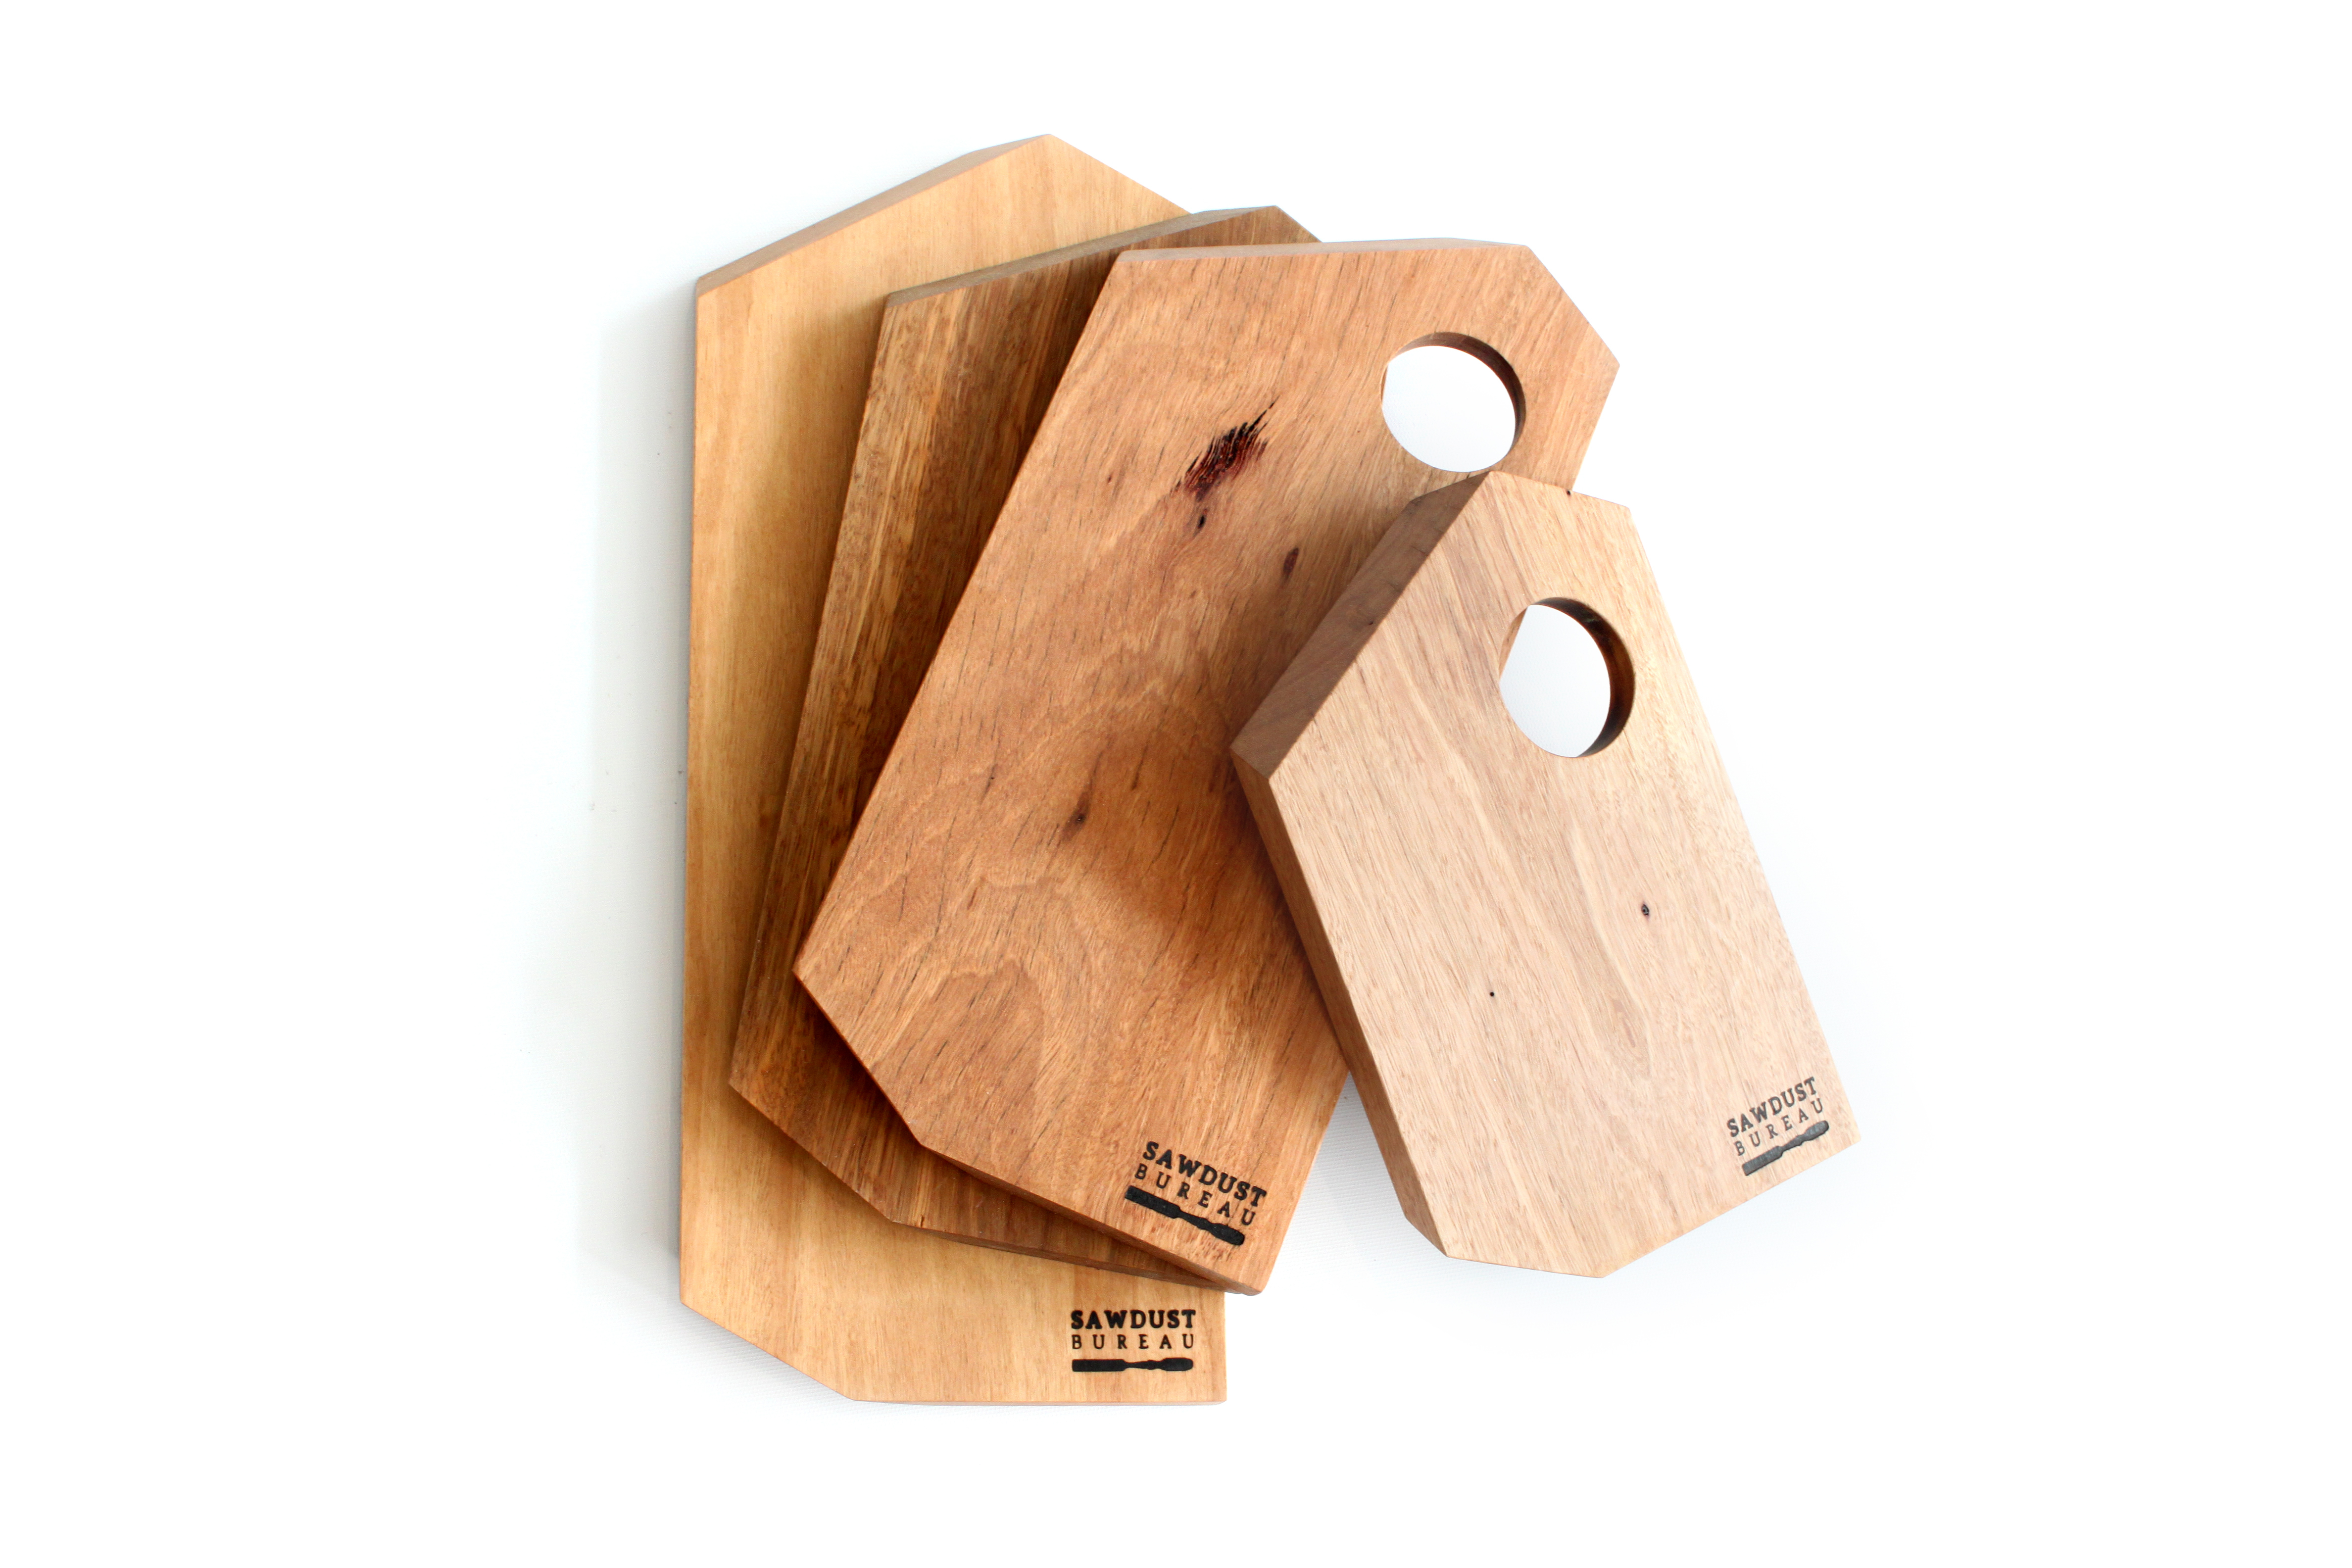 Offcut boards